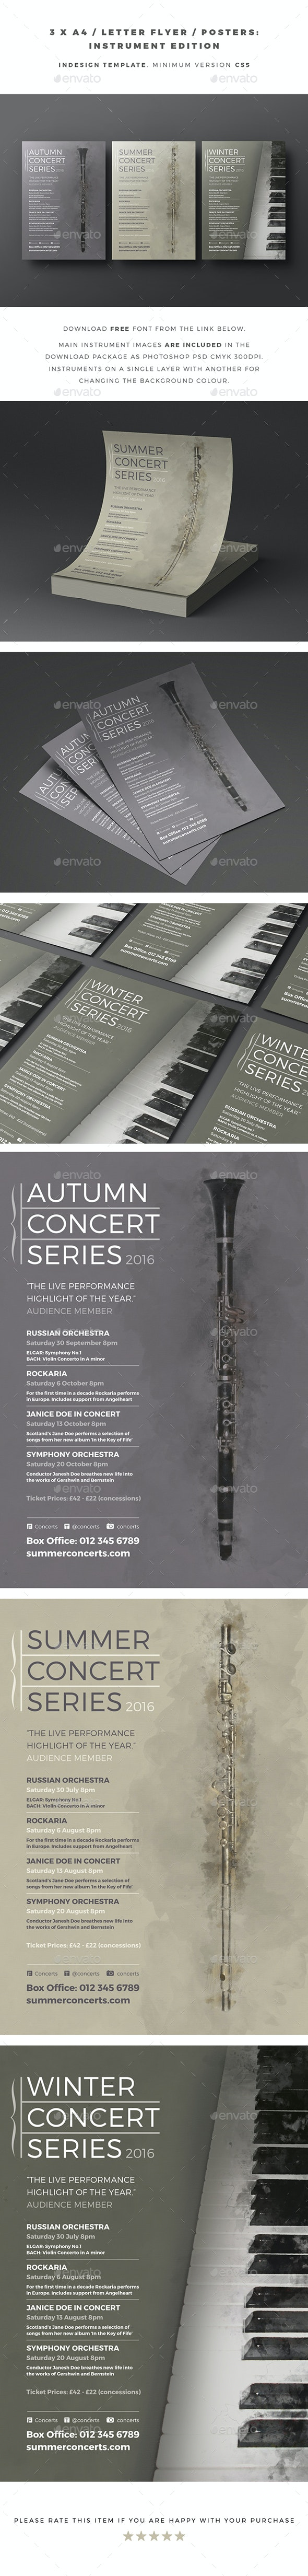 3 x A4 / Letter Flyer / Posters - Instrument Edition - Concerts Events